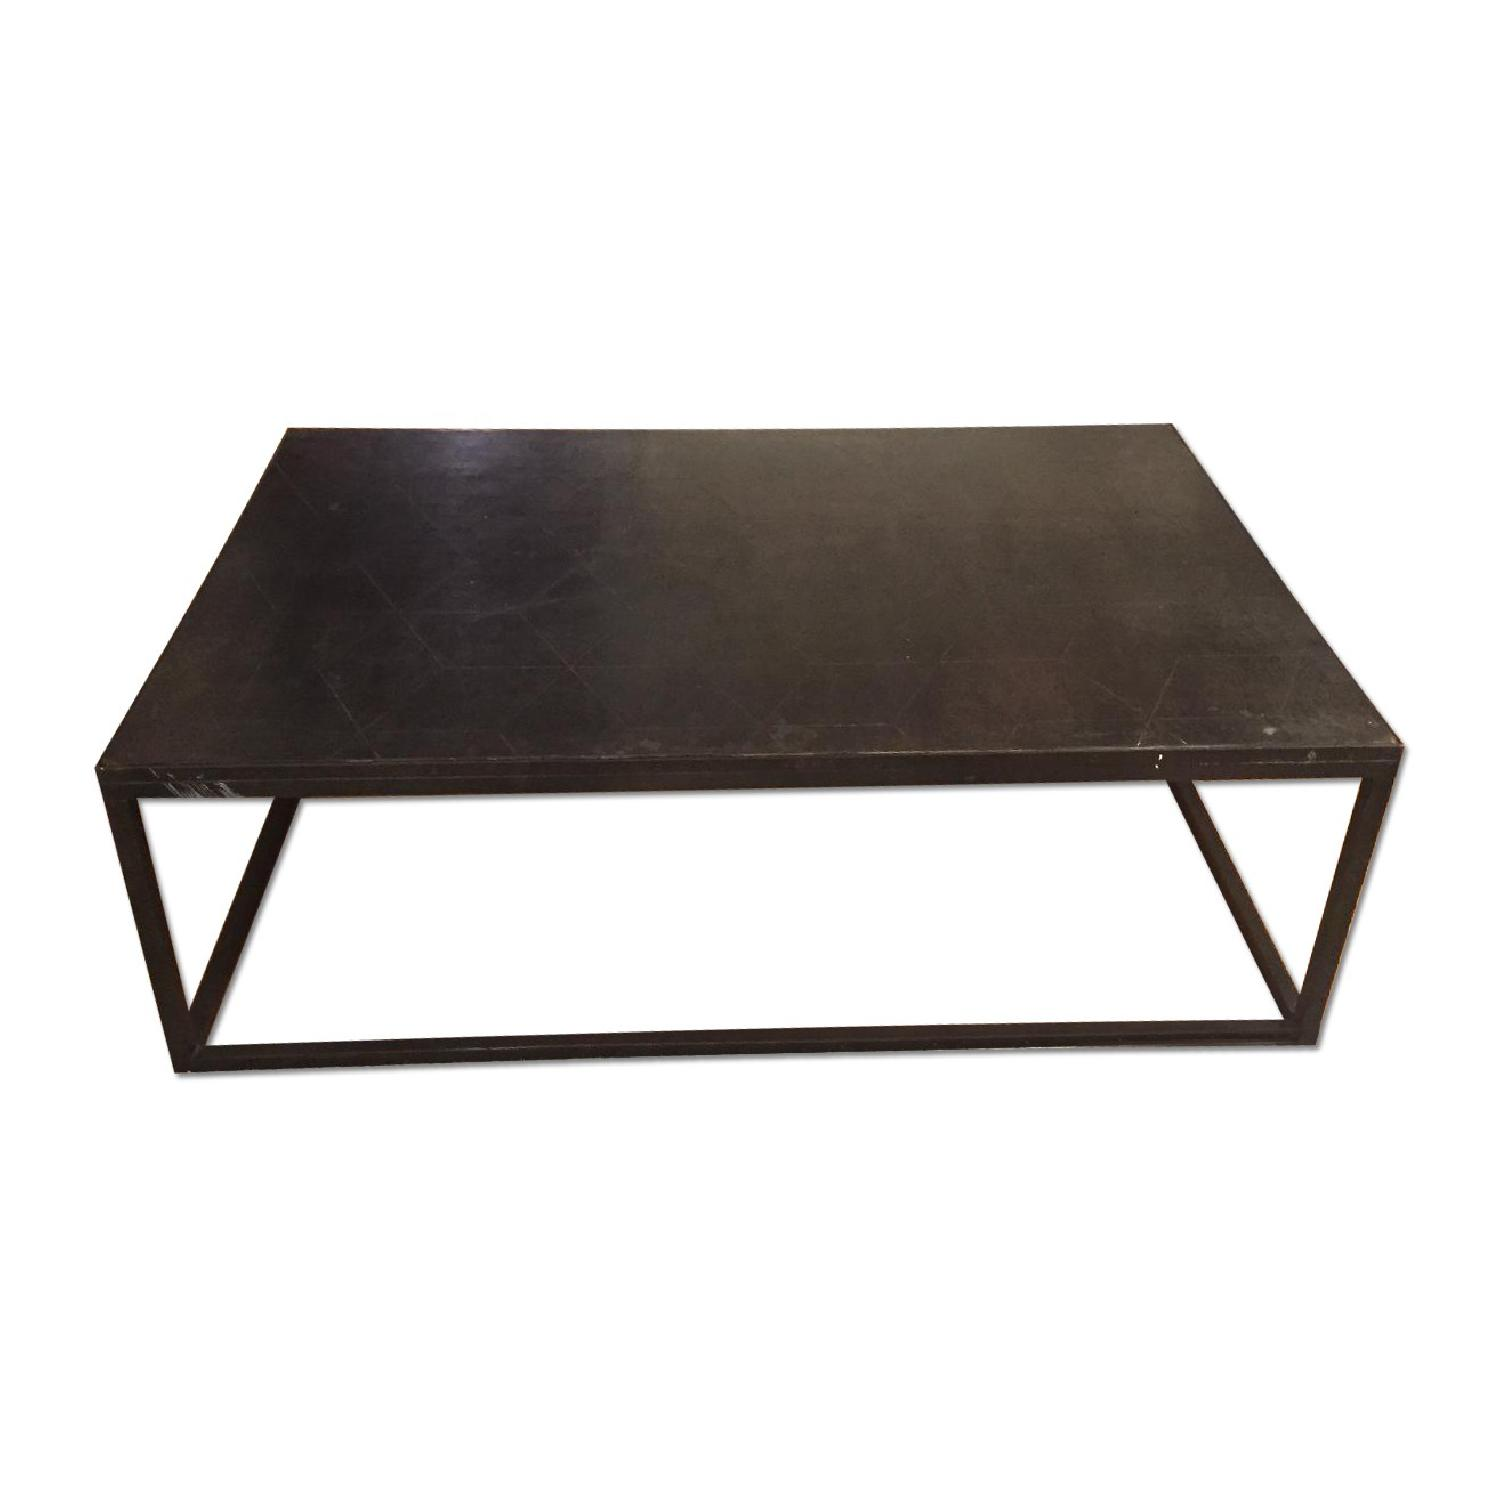 Restoration hardware metal parquet coffee table aptdeco Restoration coffee tables